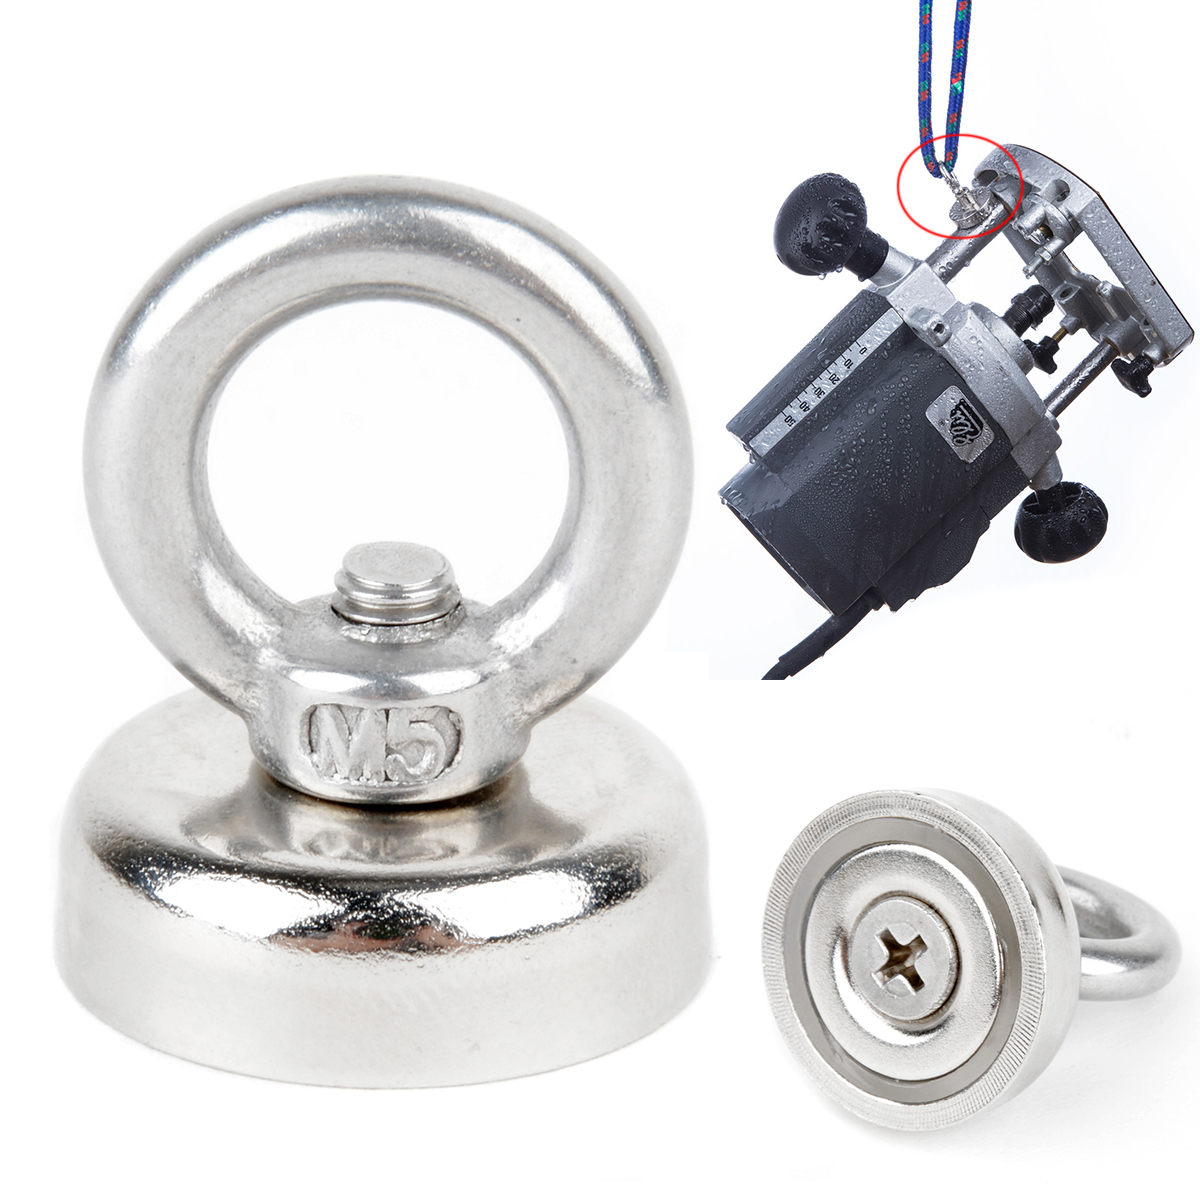 1pc Mini Recovery Clamping Magnet 25mm Very Strong Detector Magnet For Sea Fishing Treasure Hunting Keys Recovering Mayitr in Magnetic Materials from Home Improvement